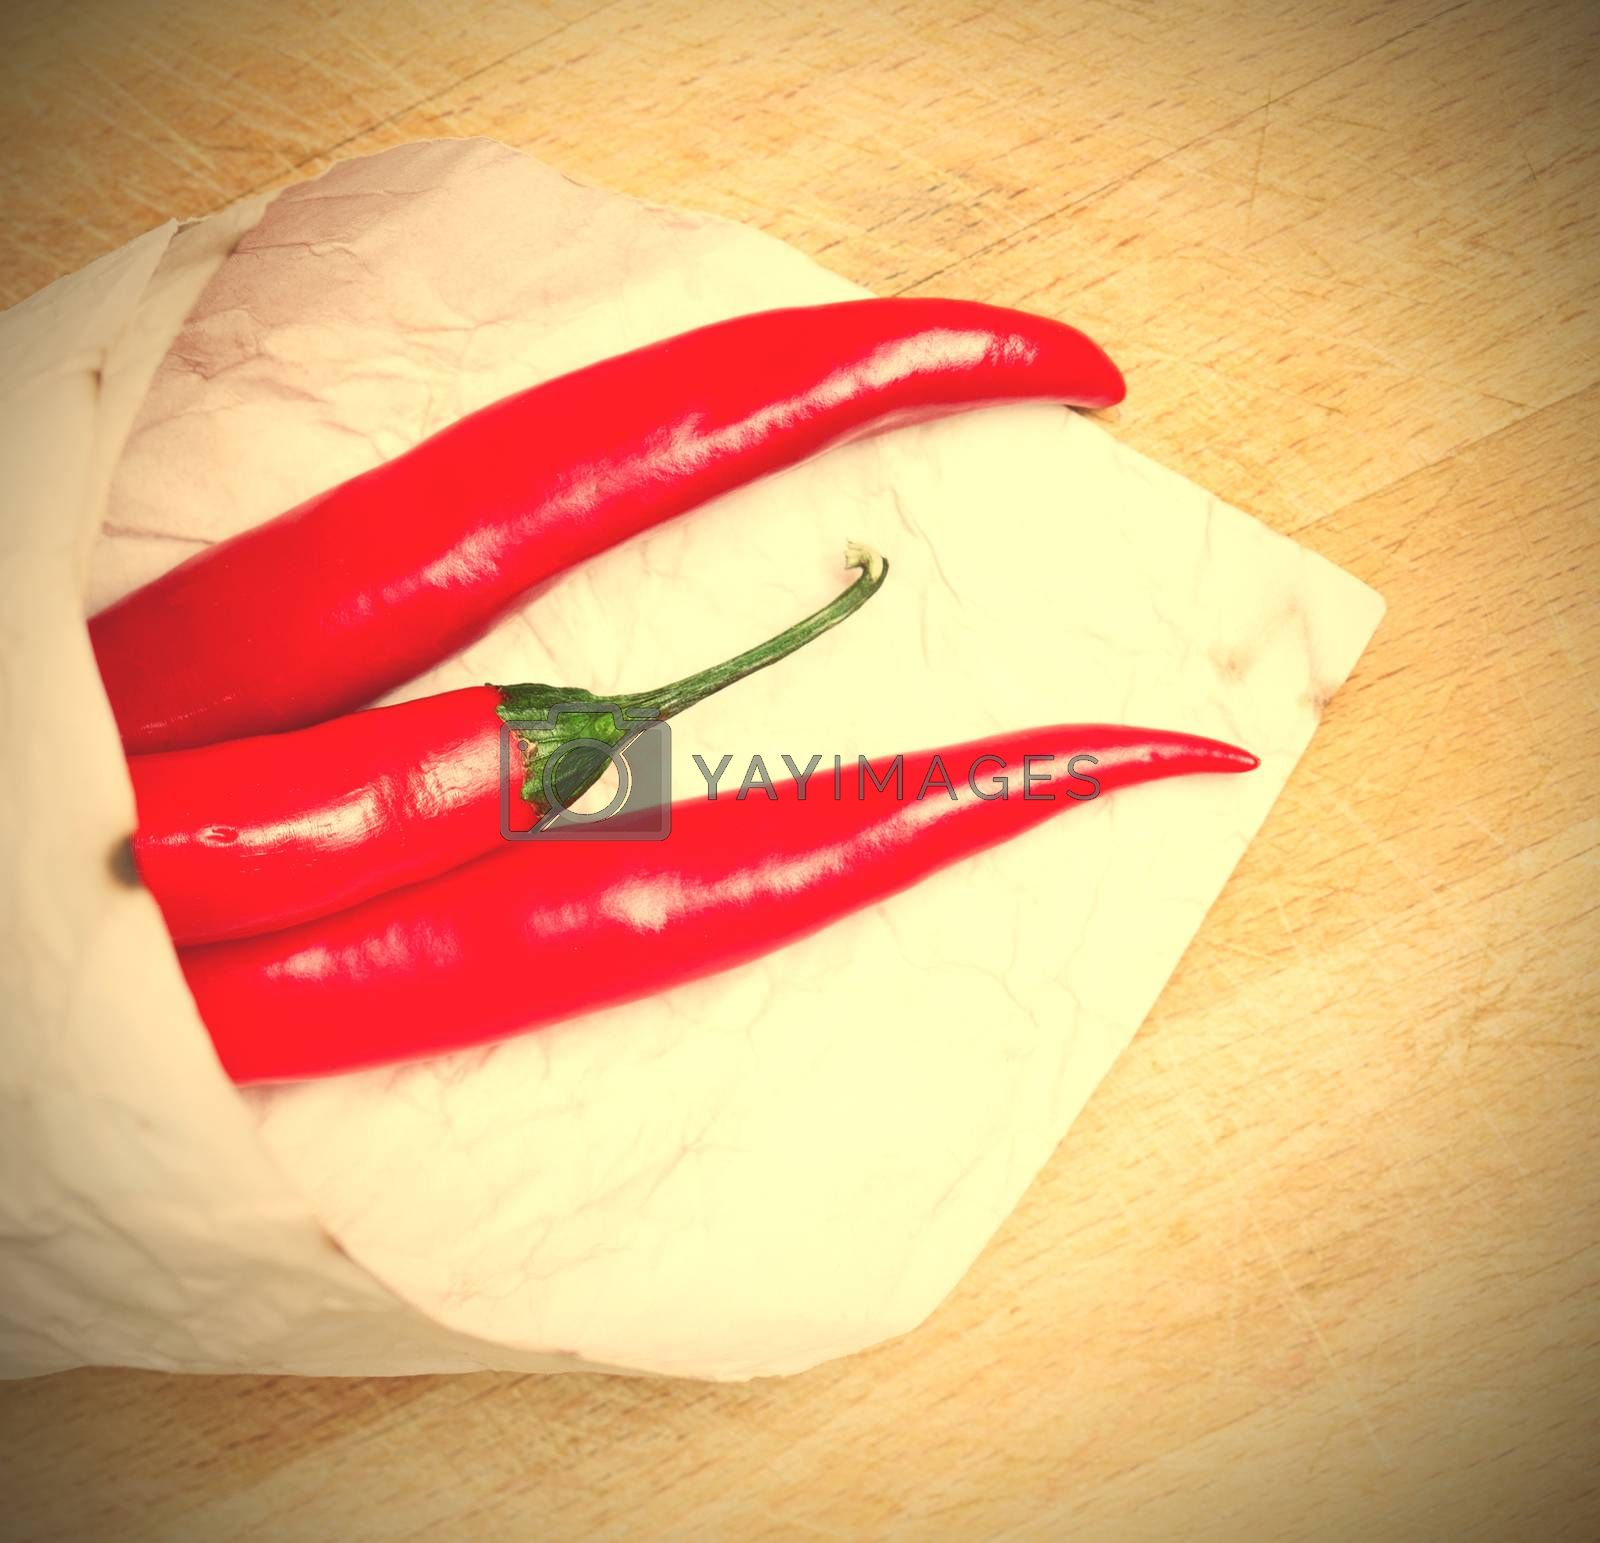 Royalty free image of red hot chili peppers in paper bags by Astroid